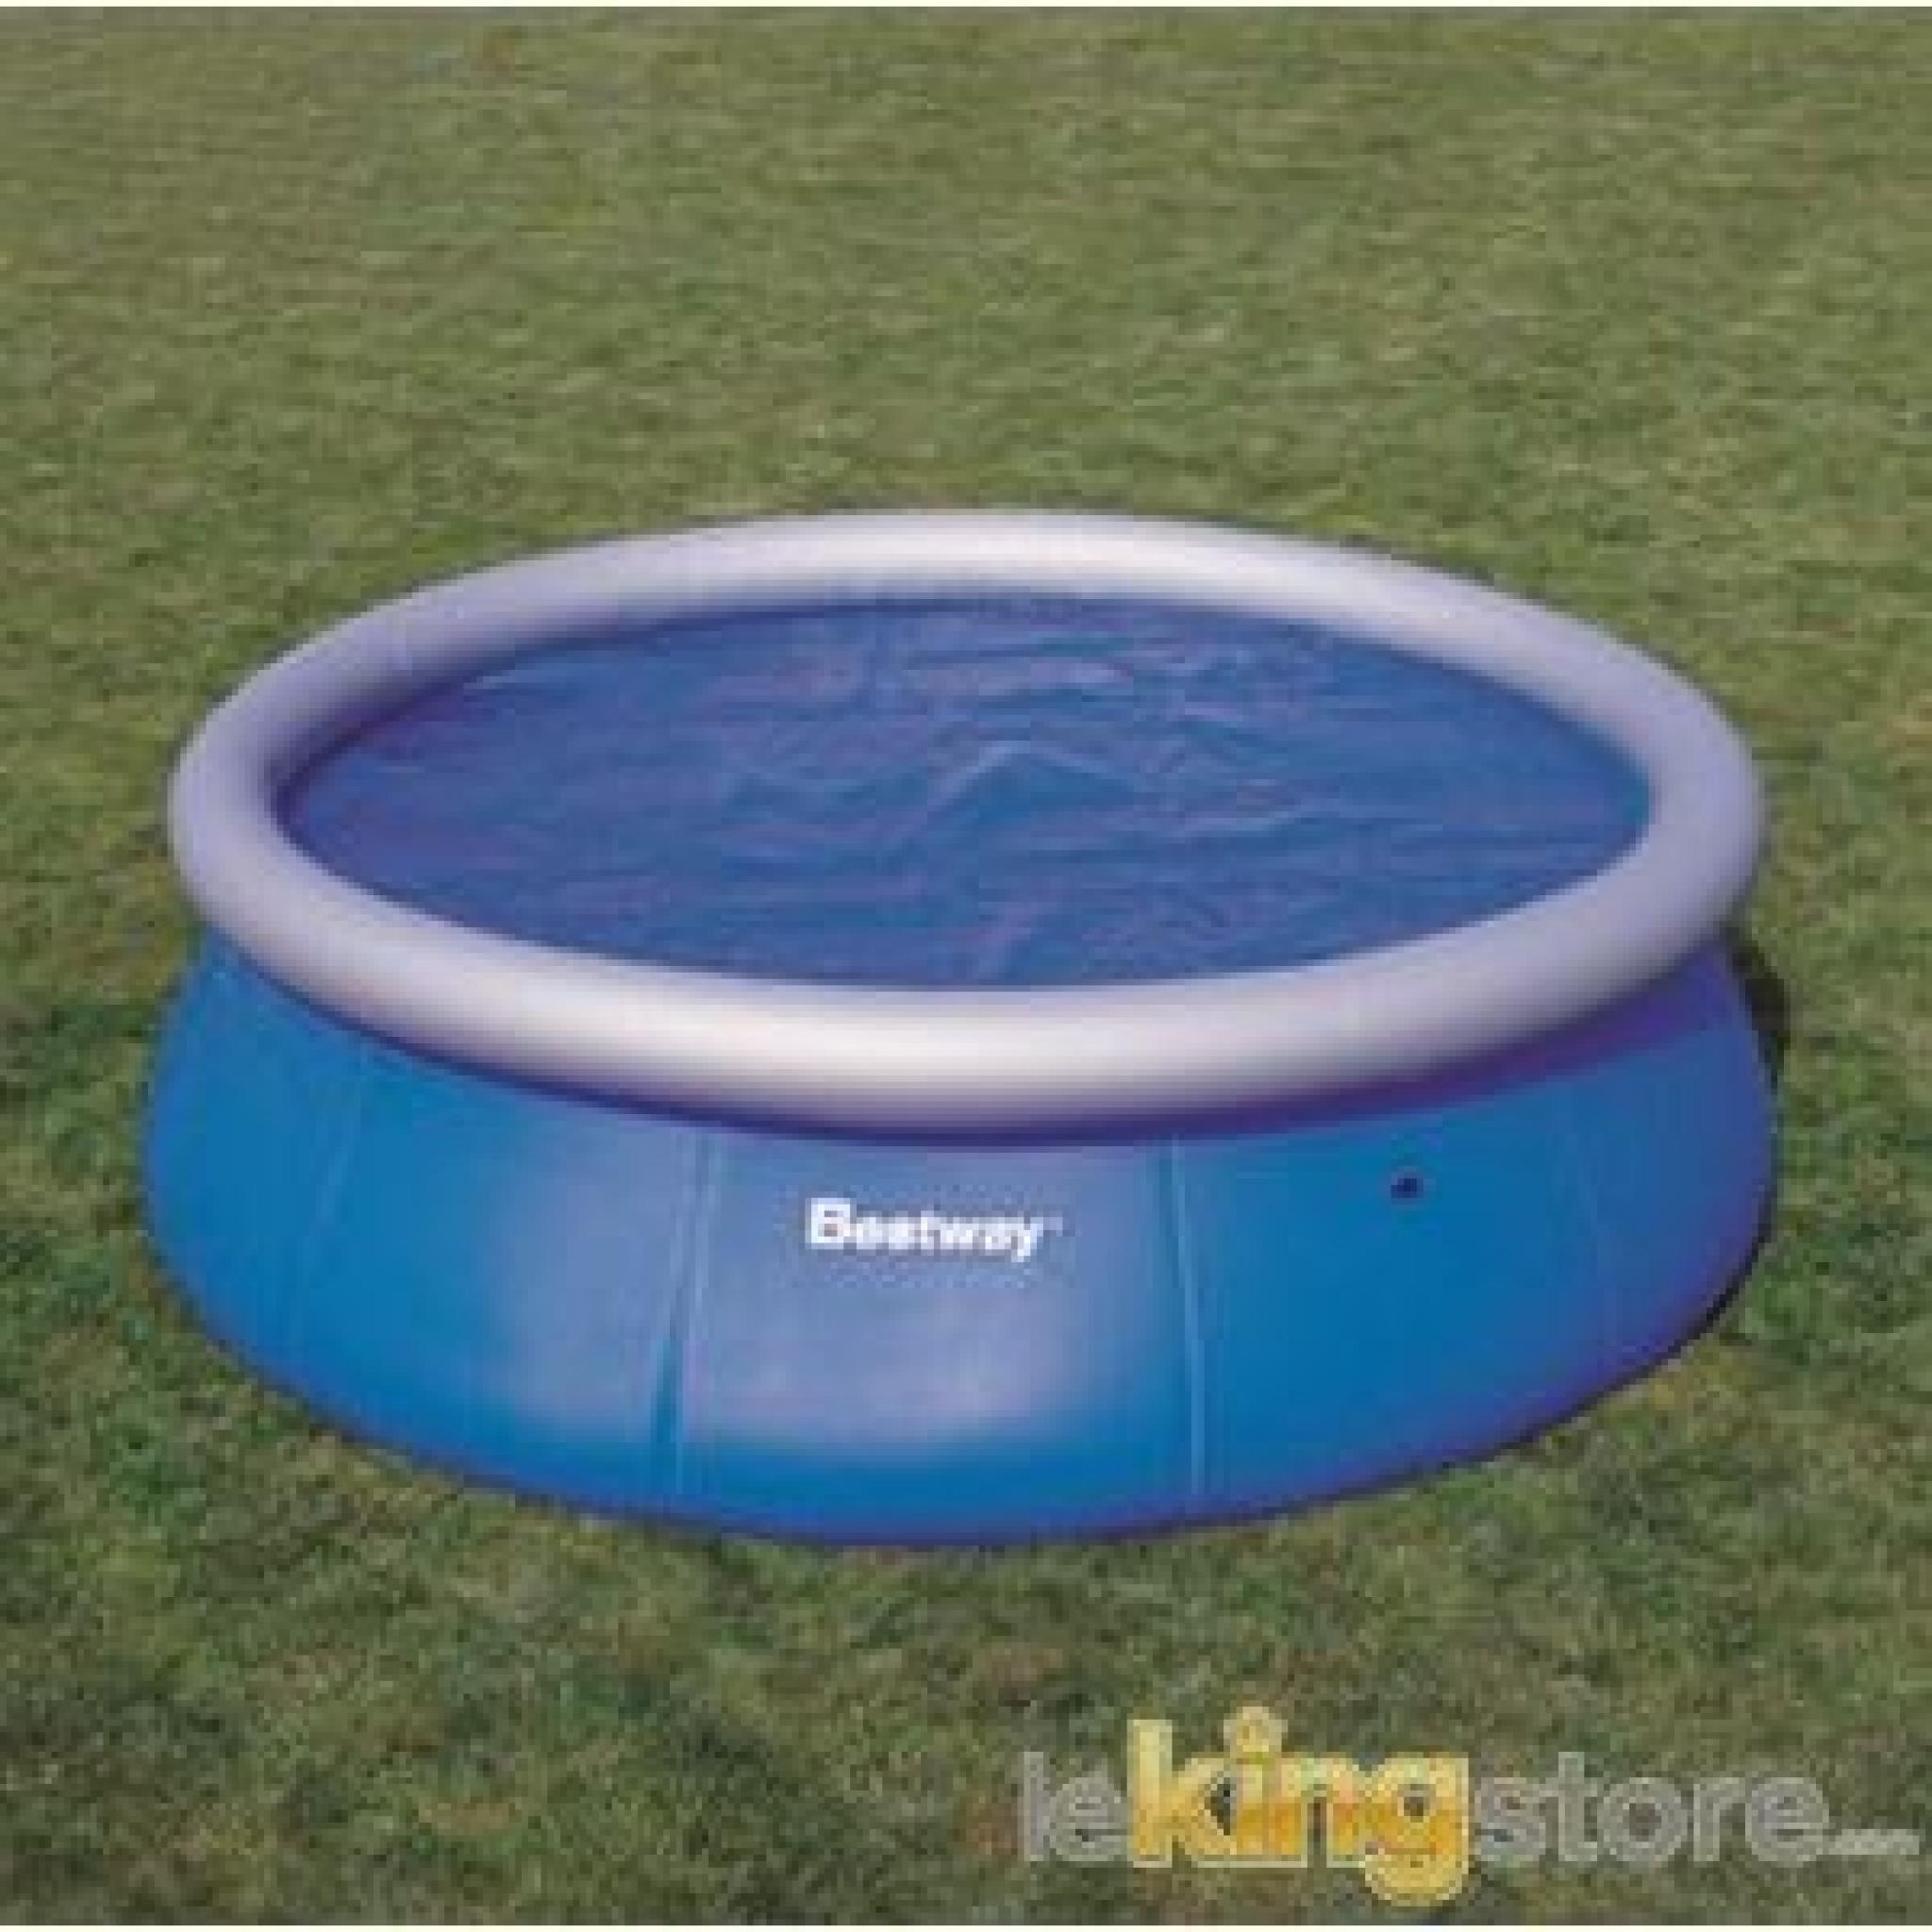 Bache piscine pas cher decoration bache piscine pas chere for Bache piscine ete